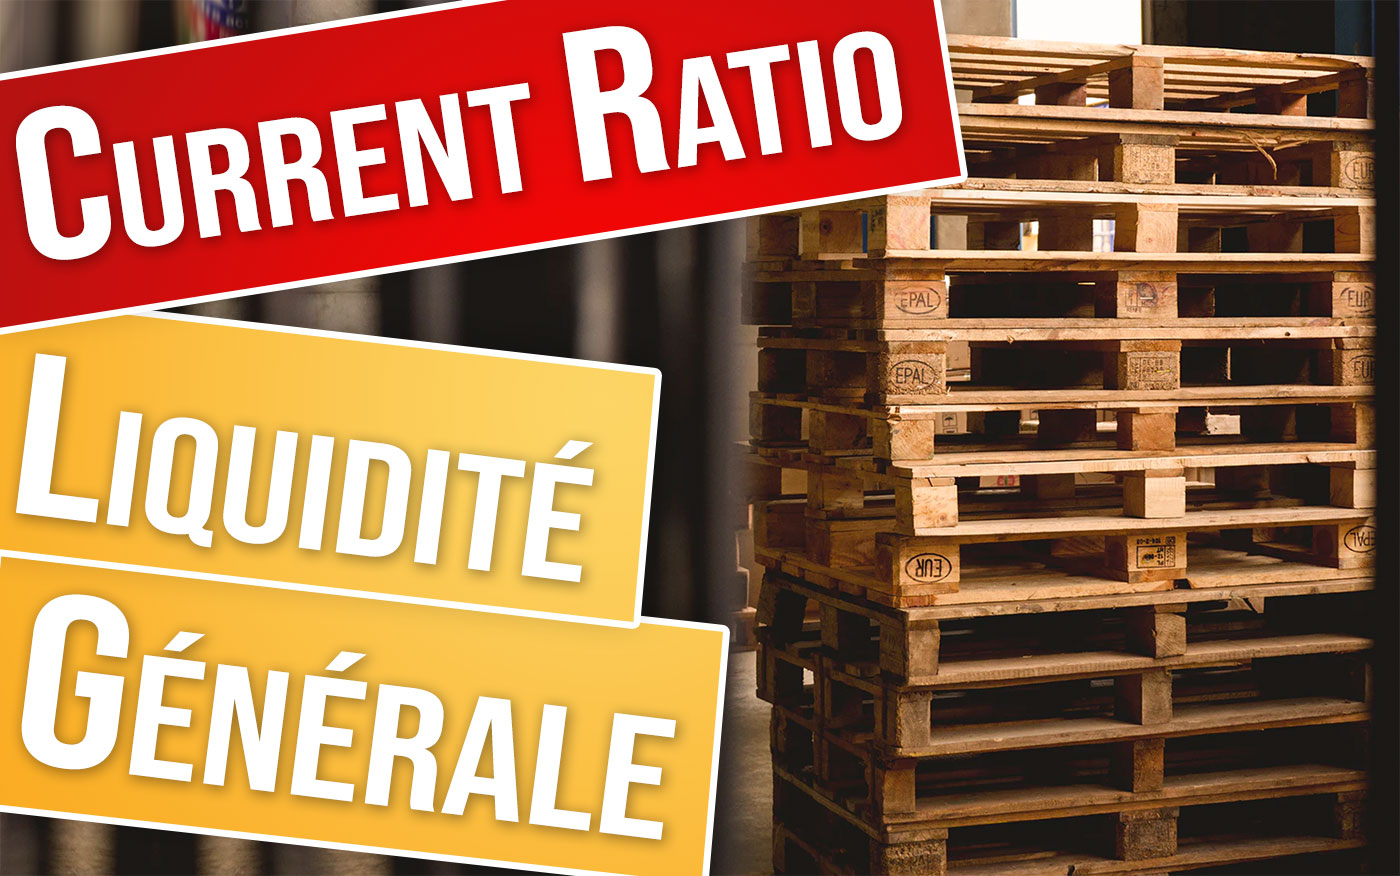 Ratio de liquidité générale (current ratio) : bourse